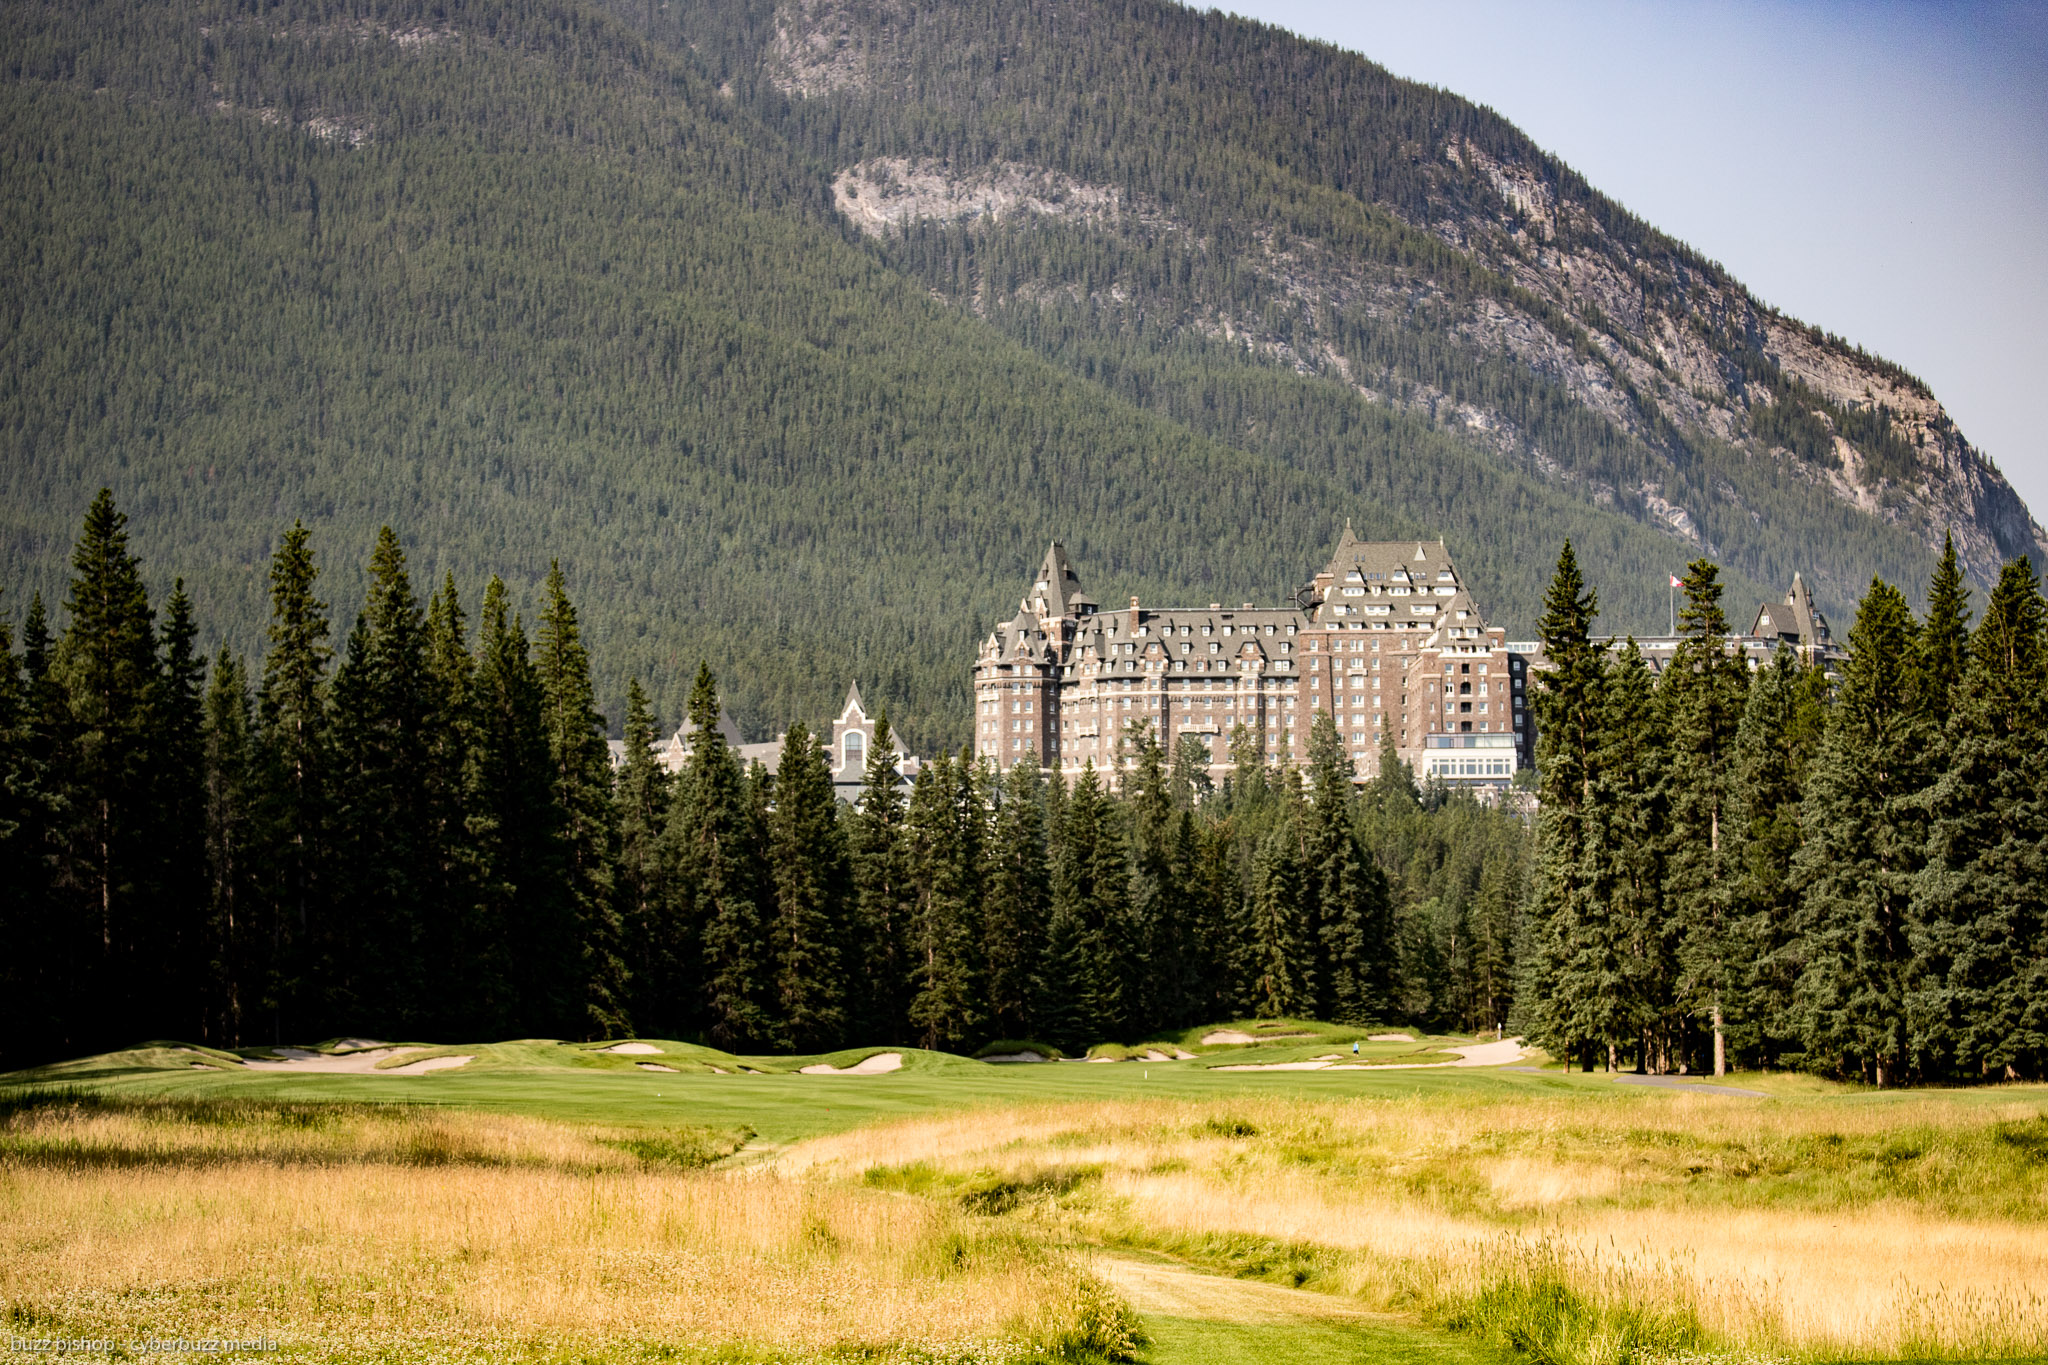 Tee Time 6 Banff Springs Golf Course The Blog